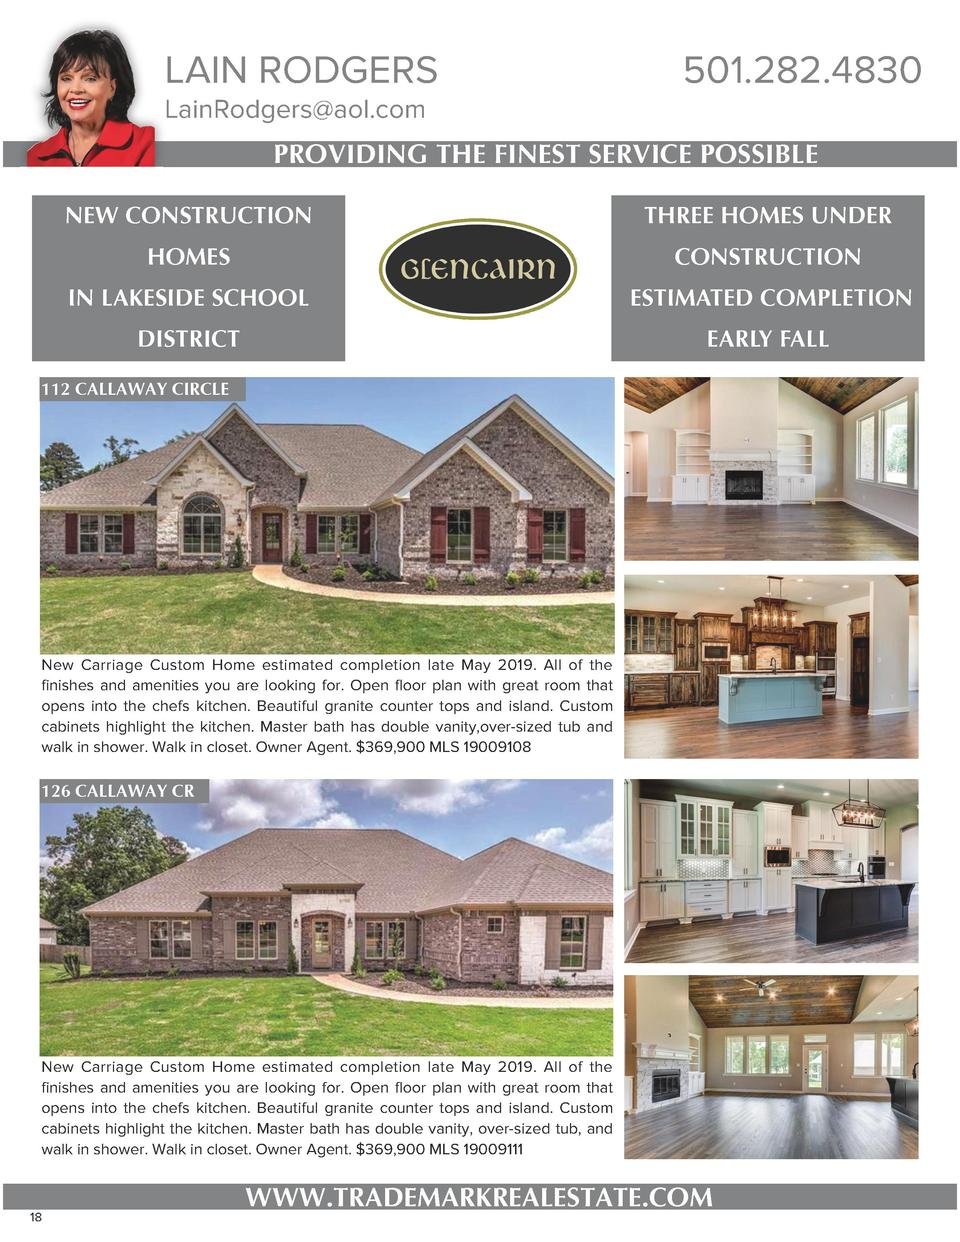 LAIN RODGERS LainRodgers aol.com  501.282.4830  PROVIDING THE FINEST SERVICE POSSIBLE NEW CONSTRUCTION  THREE HOMES UNDER ...